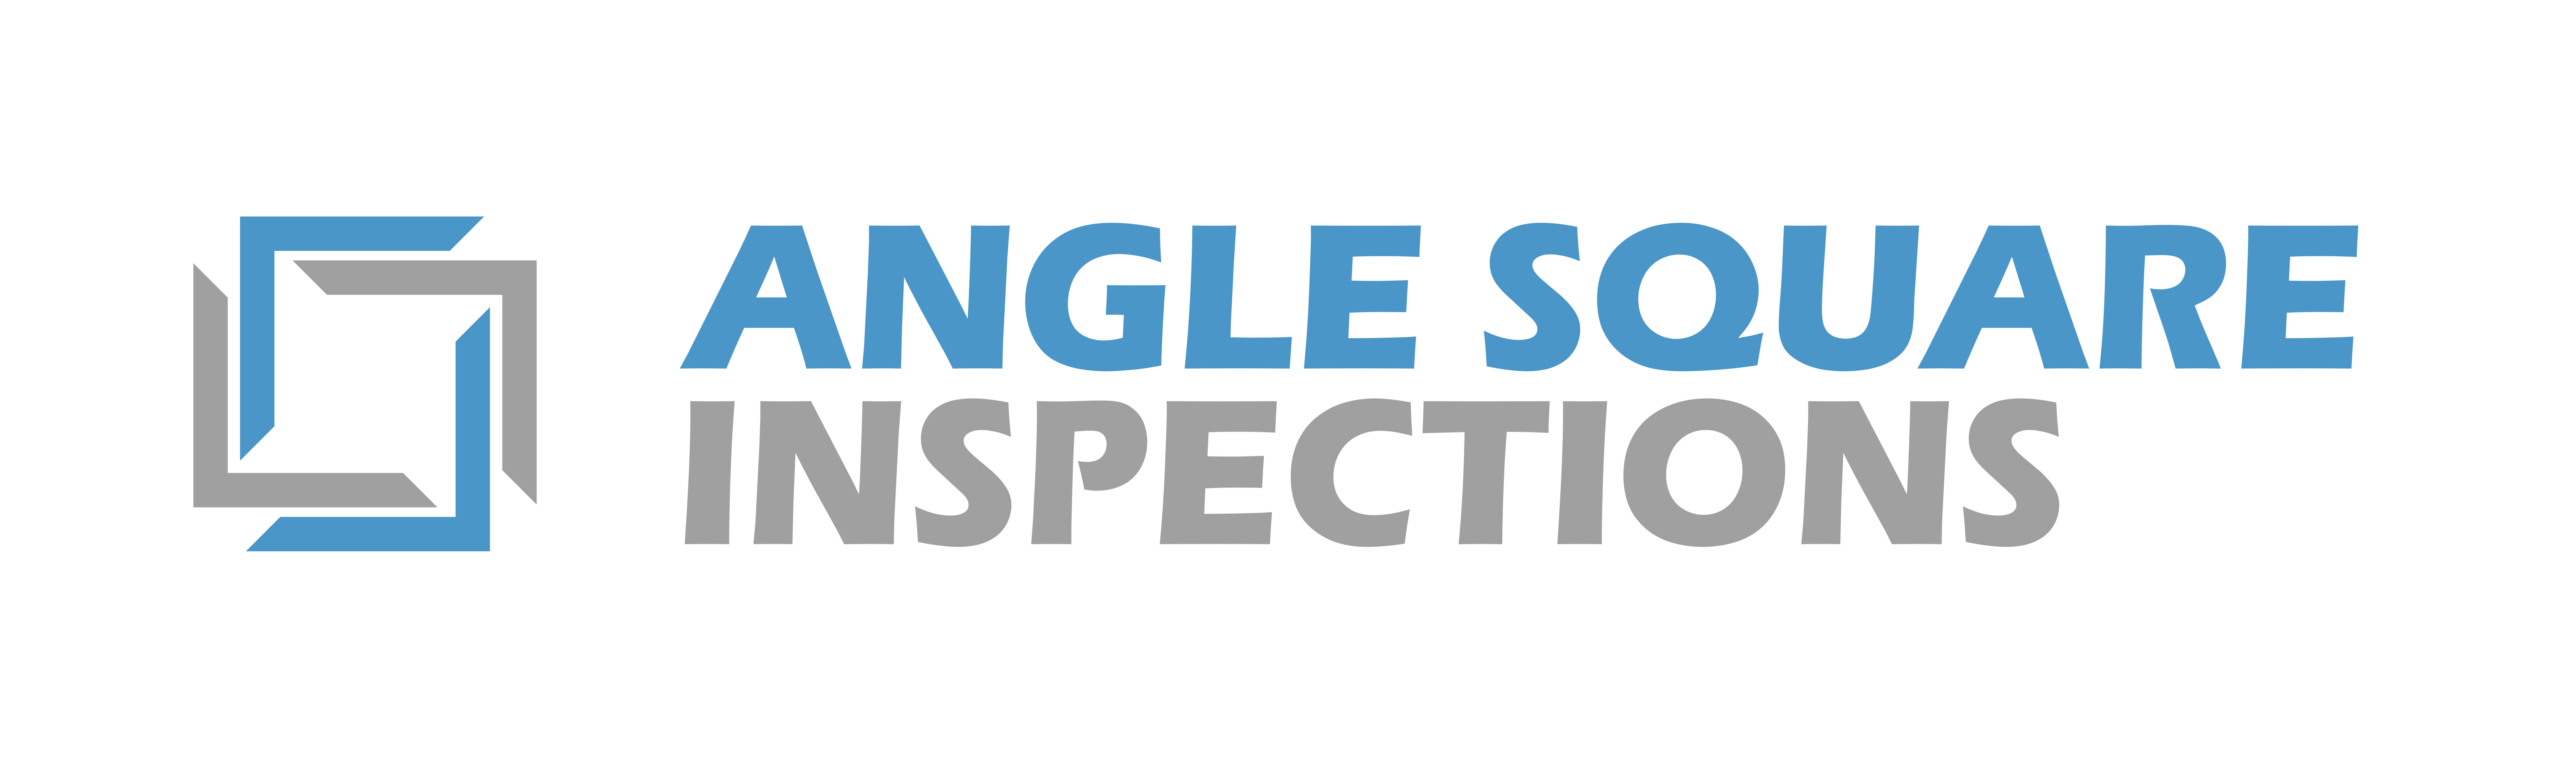 Angle Square Inspections